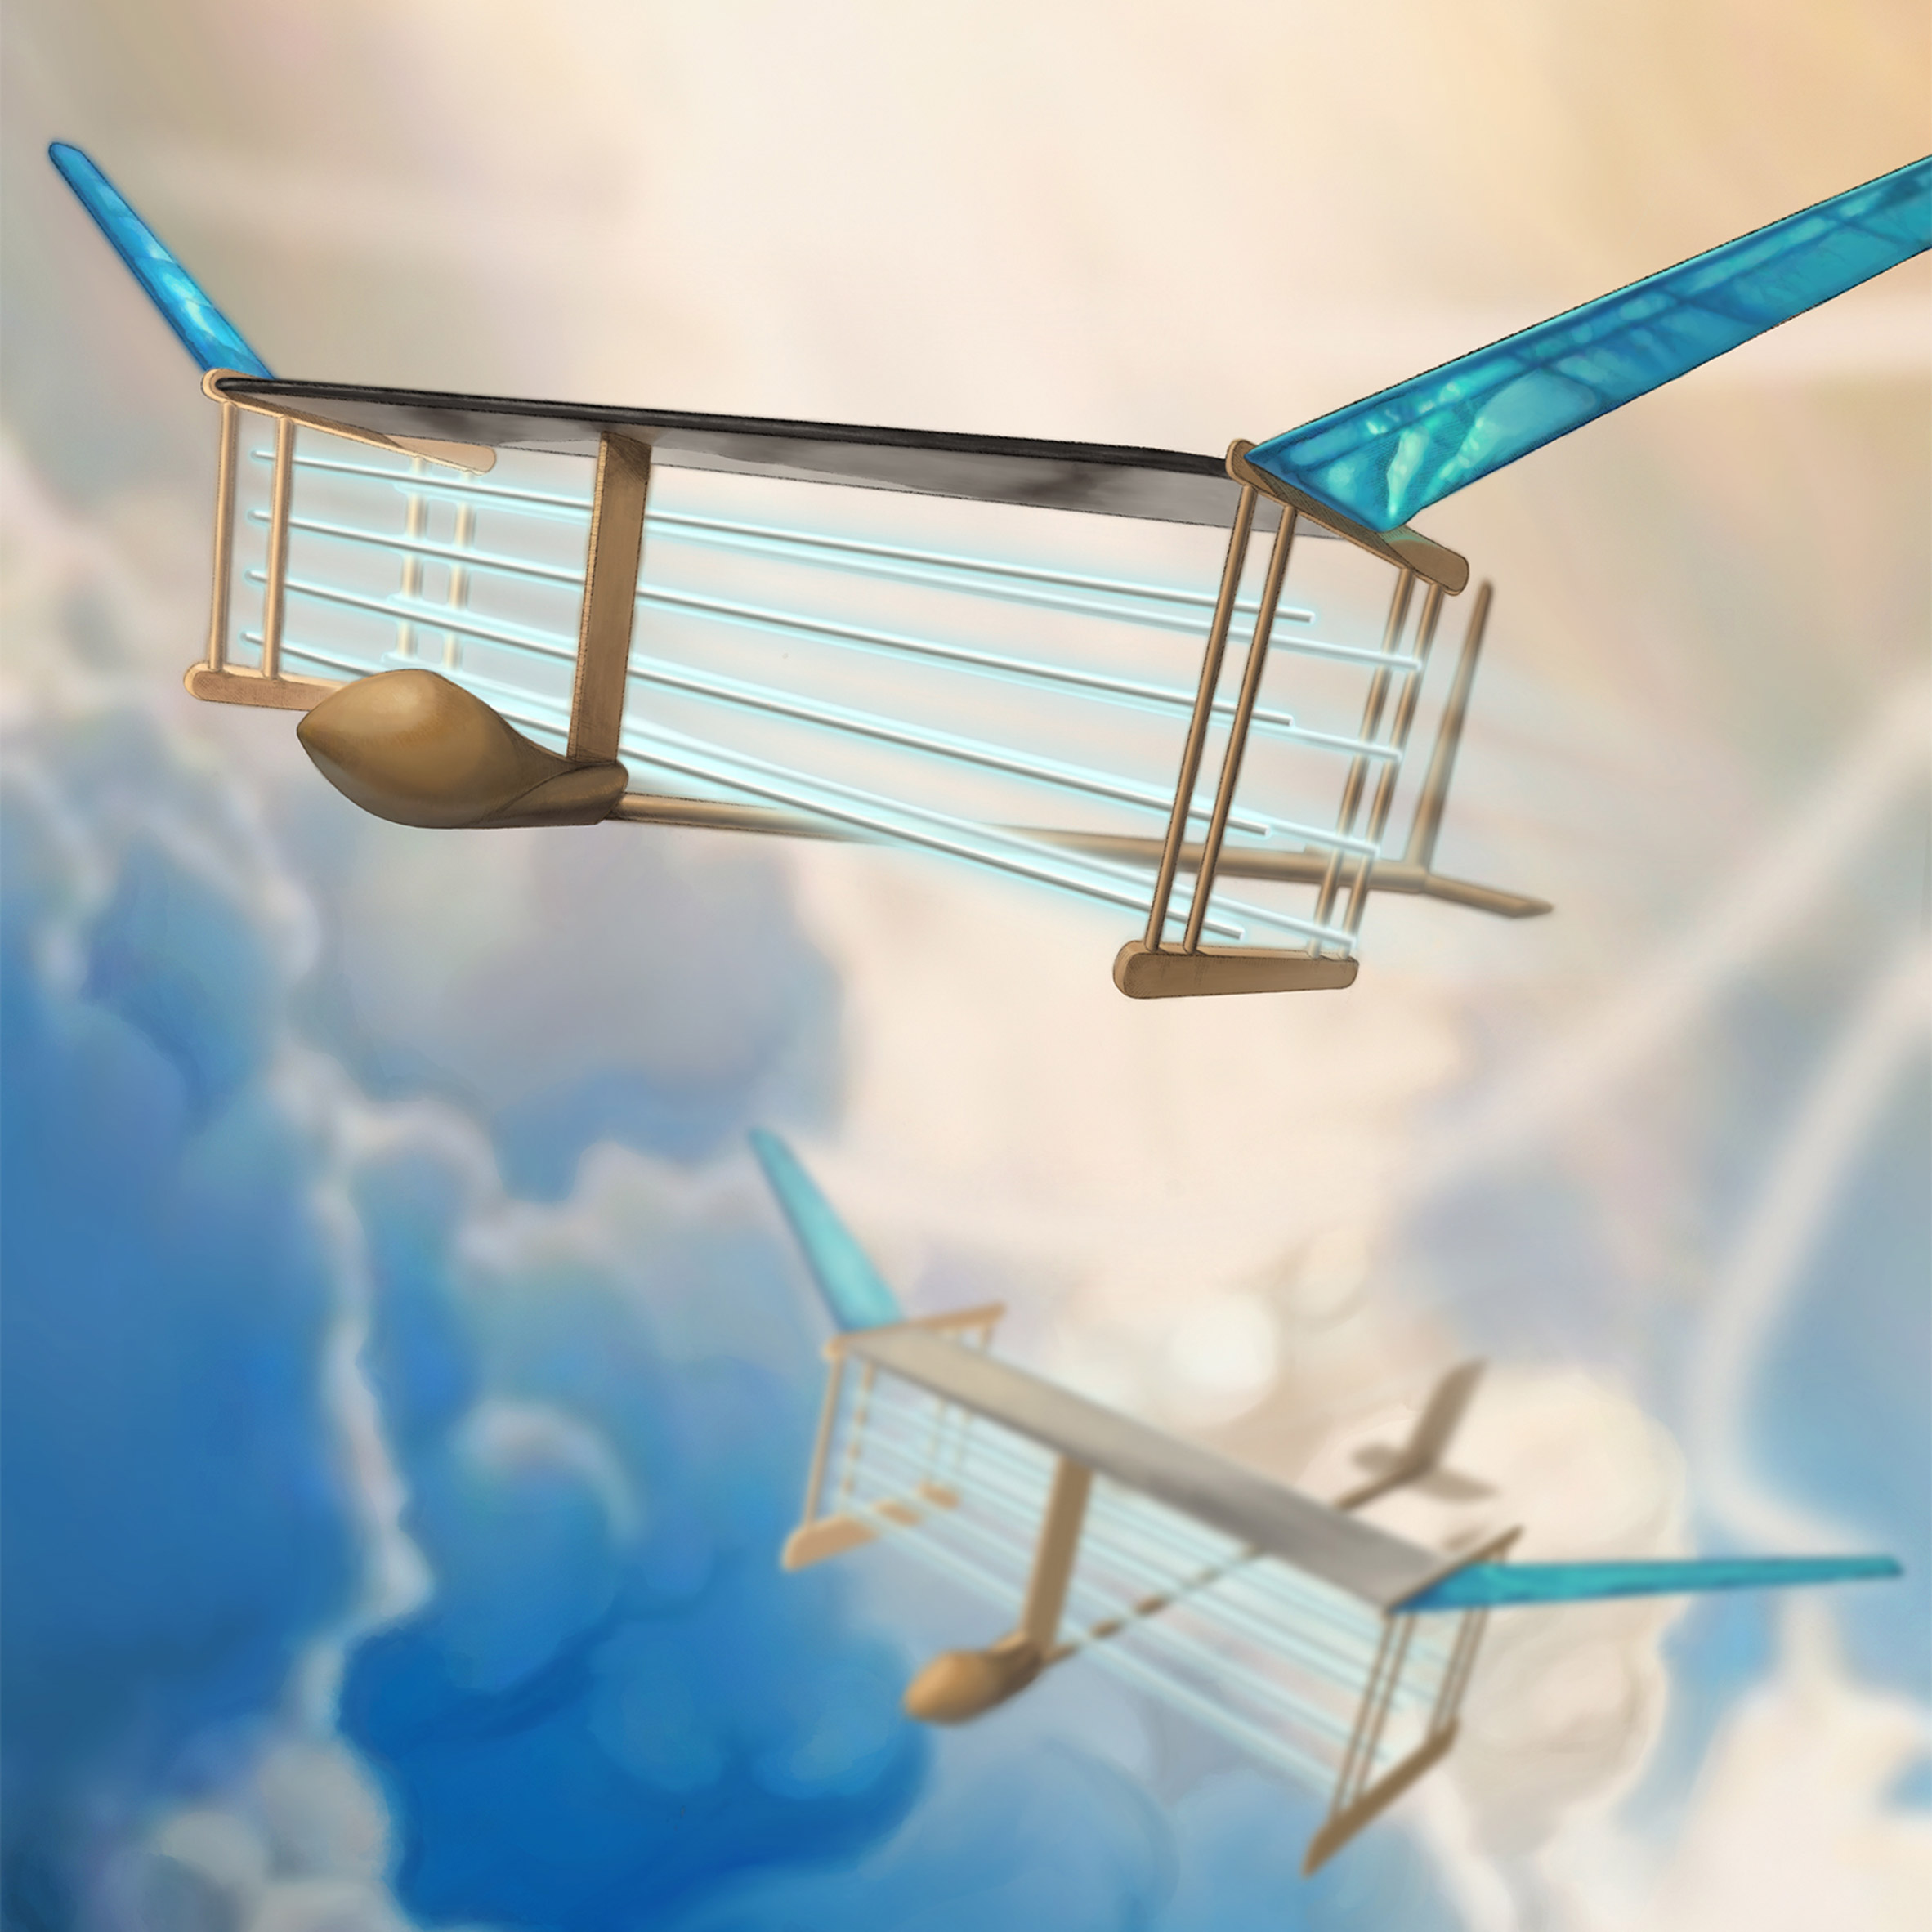 MIT plane designed by engineers to fly without any moving parts